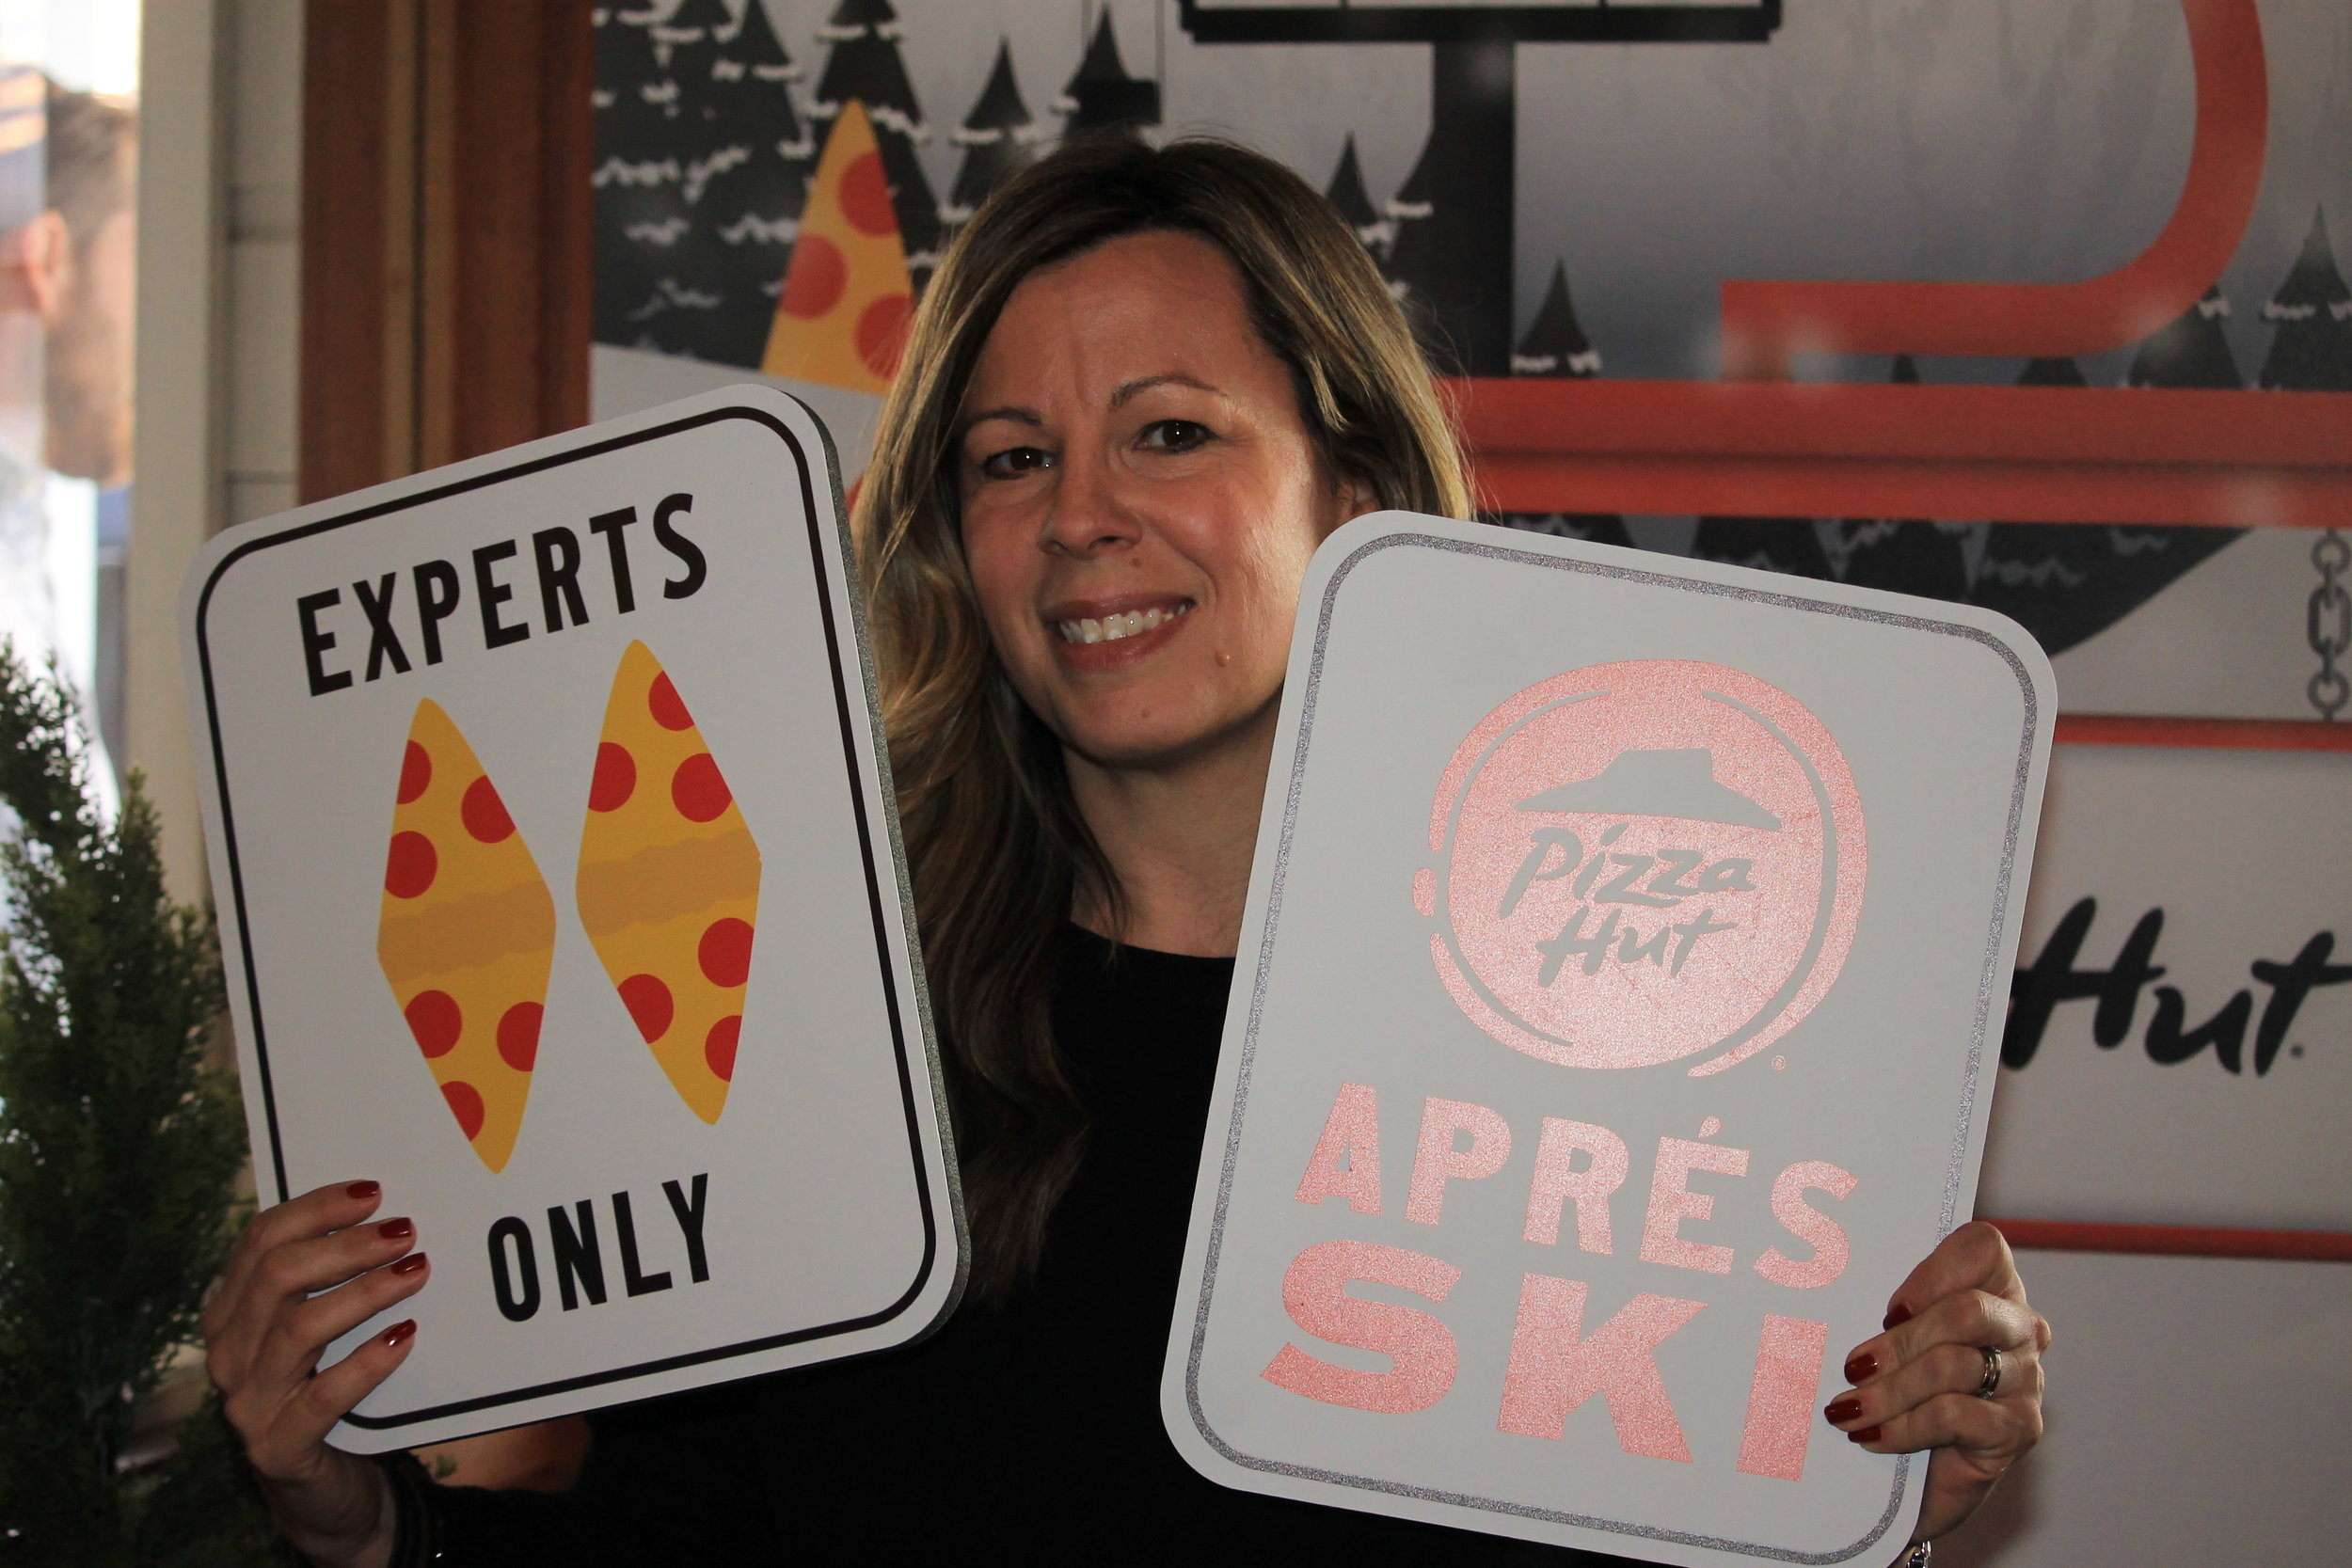 Legion M's Clare Bateman-King with the Pizza Hut photo opp signage.